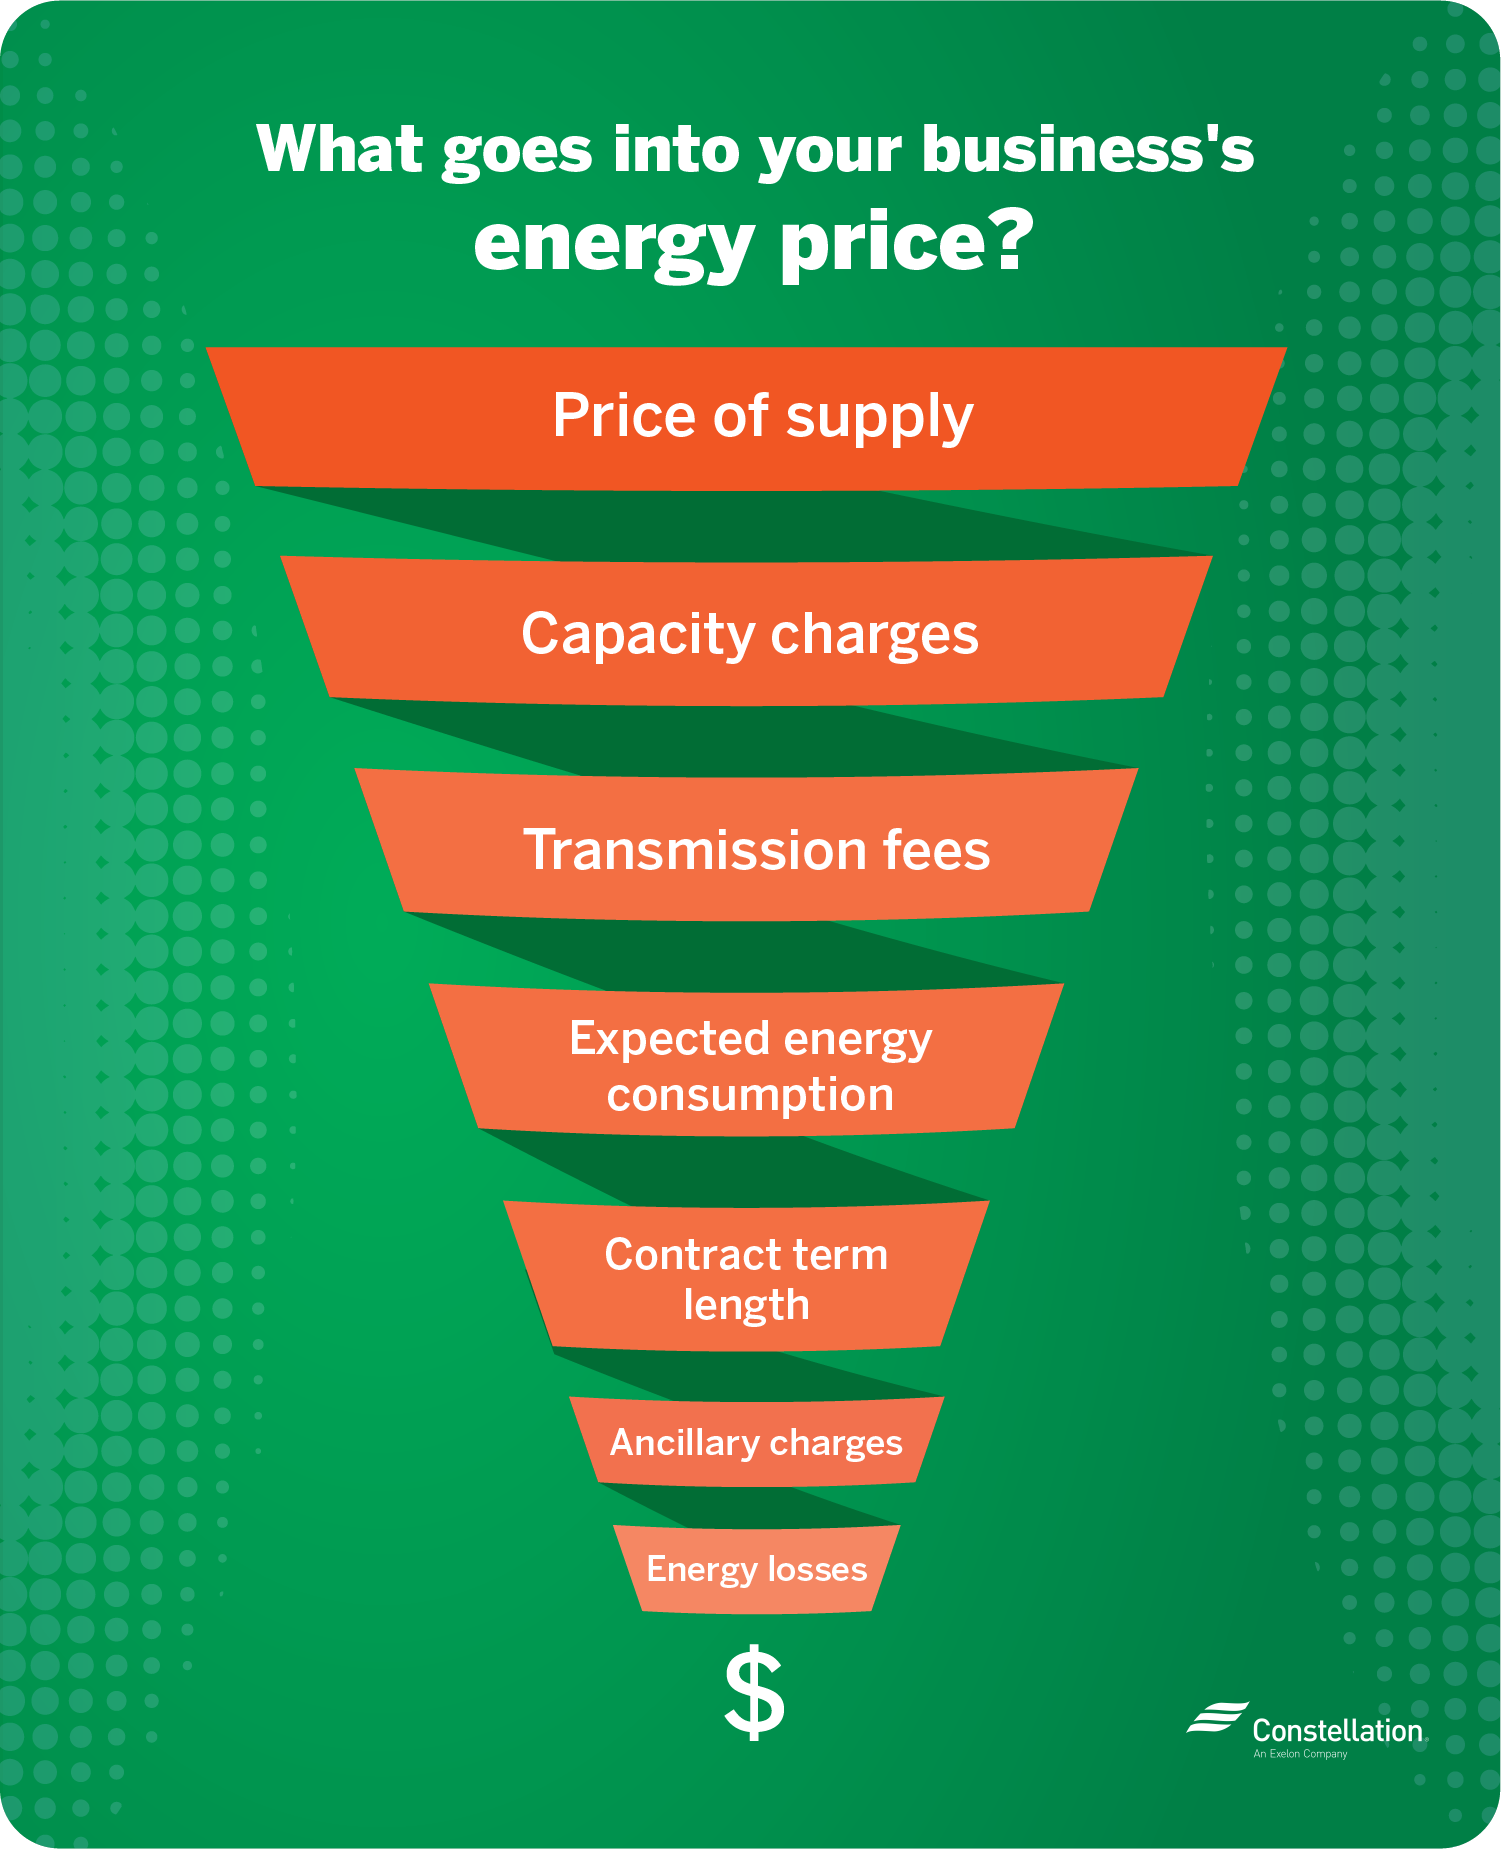 What goes into your business's energy price